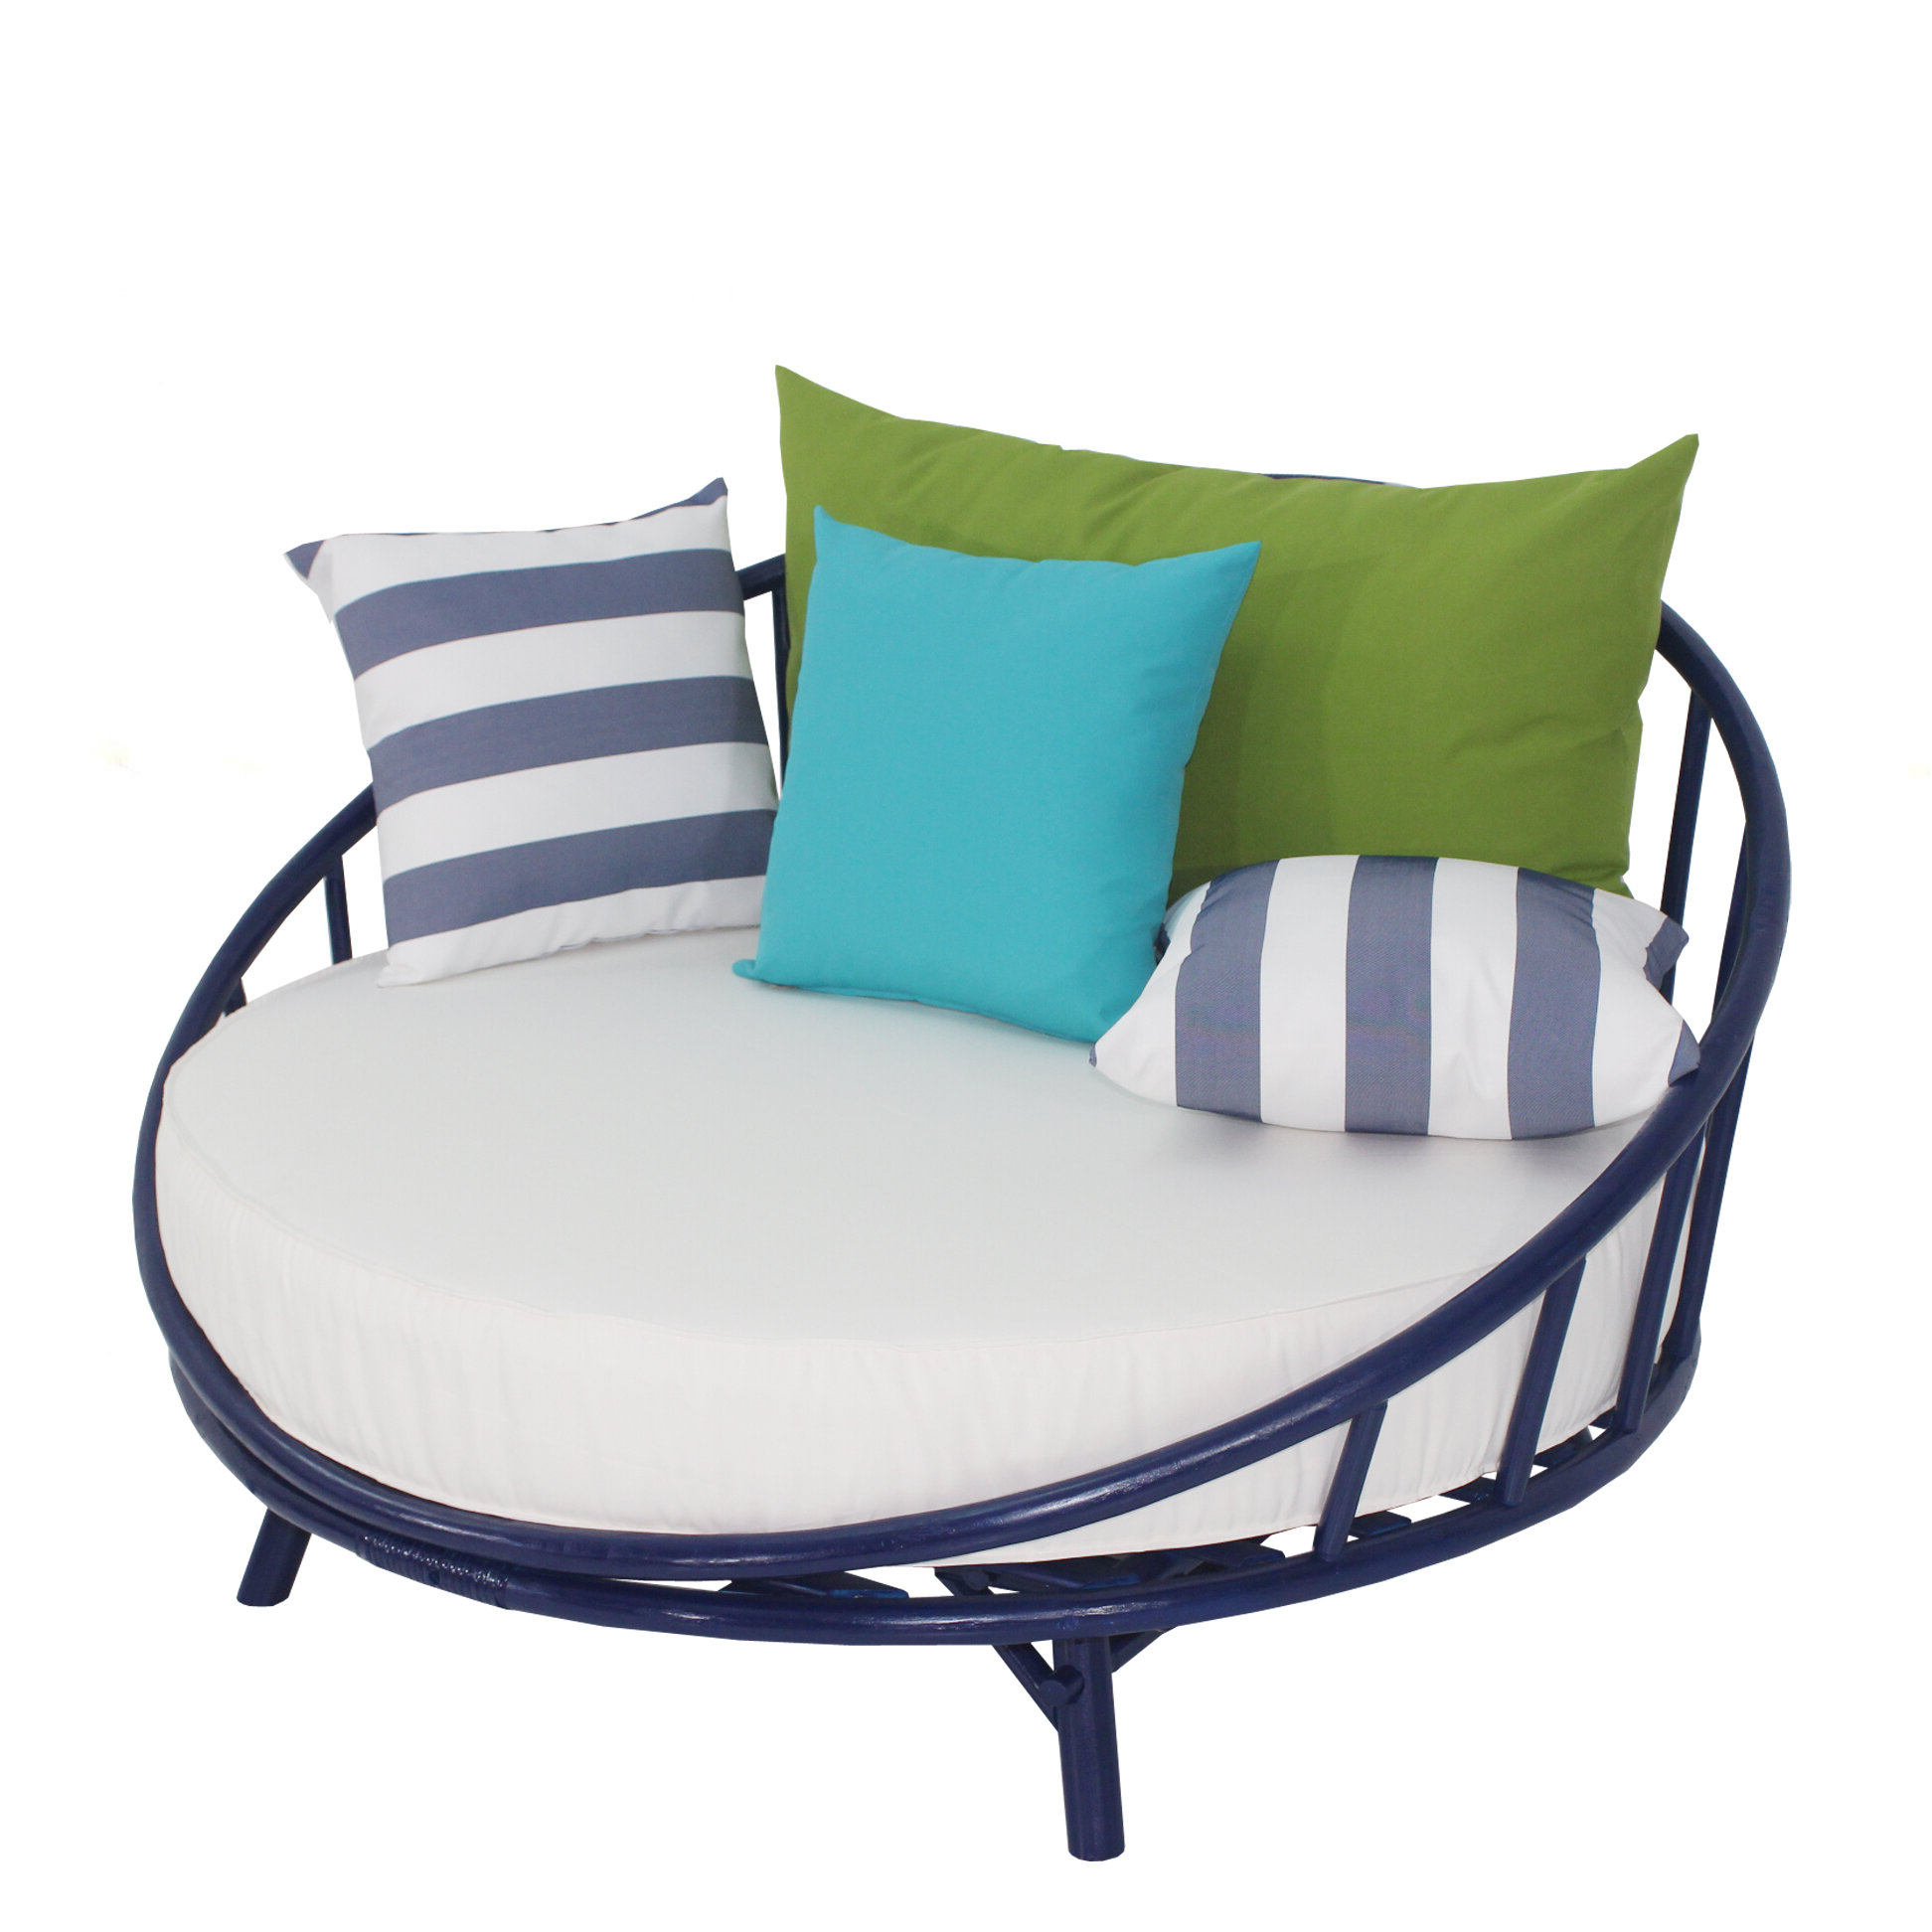 Most Current Dowling Patio Daybeds With Cushion Within Olu Bamboo Large Round Patio Daybed With Cushions (View 25 of 25)